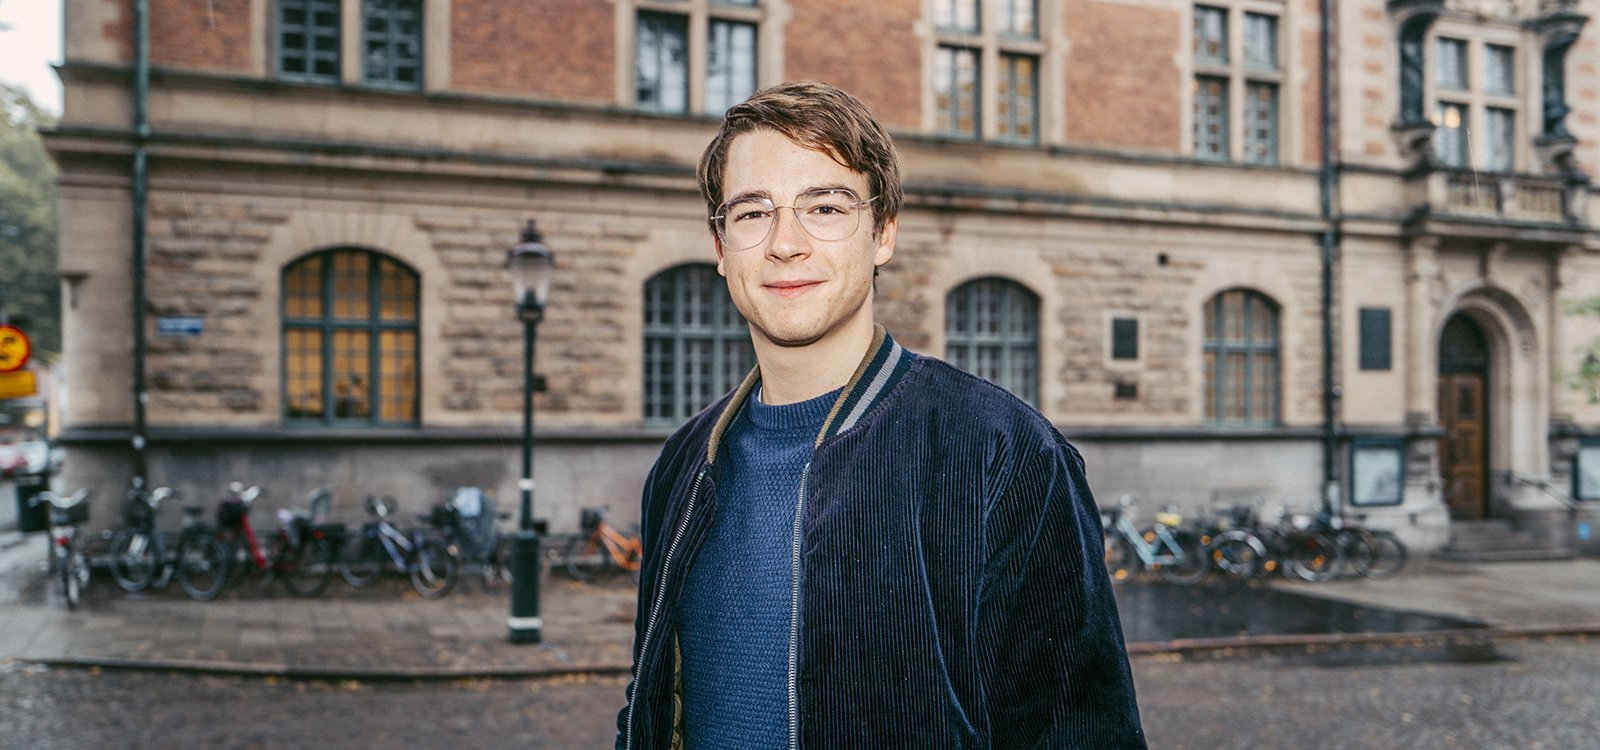 <p>Ricardo Losa, master's student at Lund University's International Institute for Industrial Environmental Economics.</p>